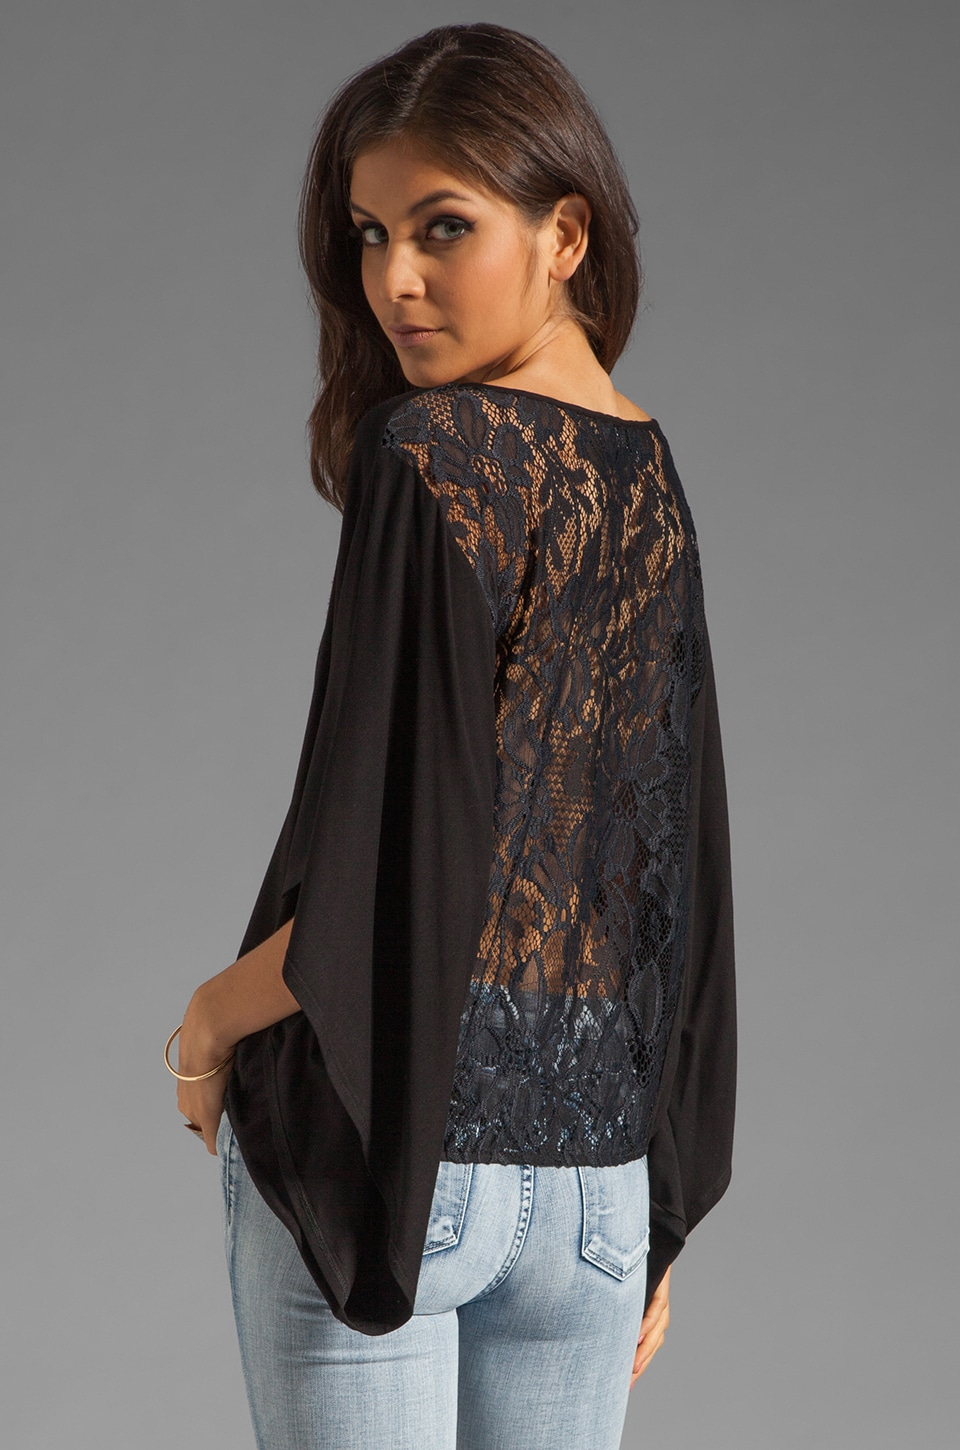 VAVA by Joy Han Skyler Lace Back Top in Black